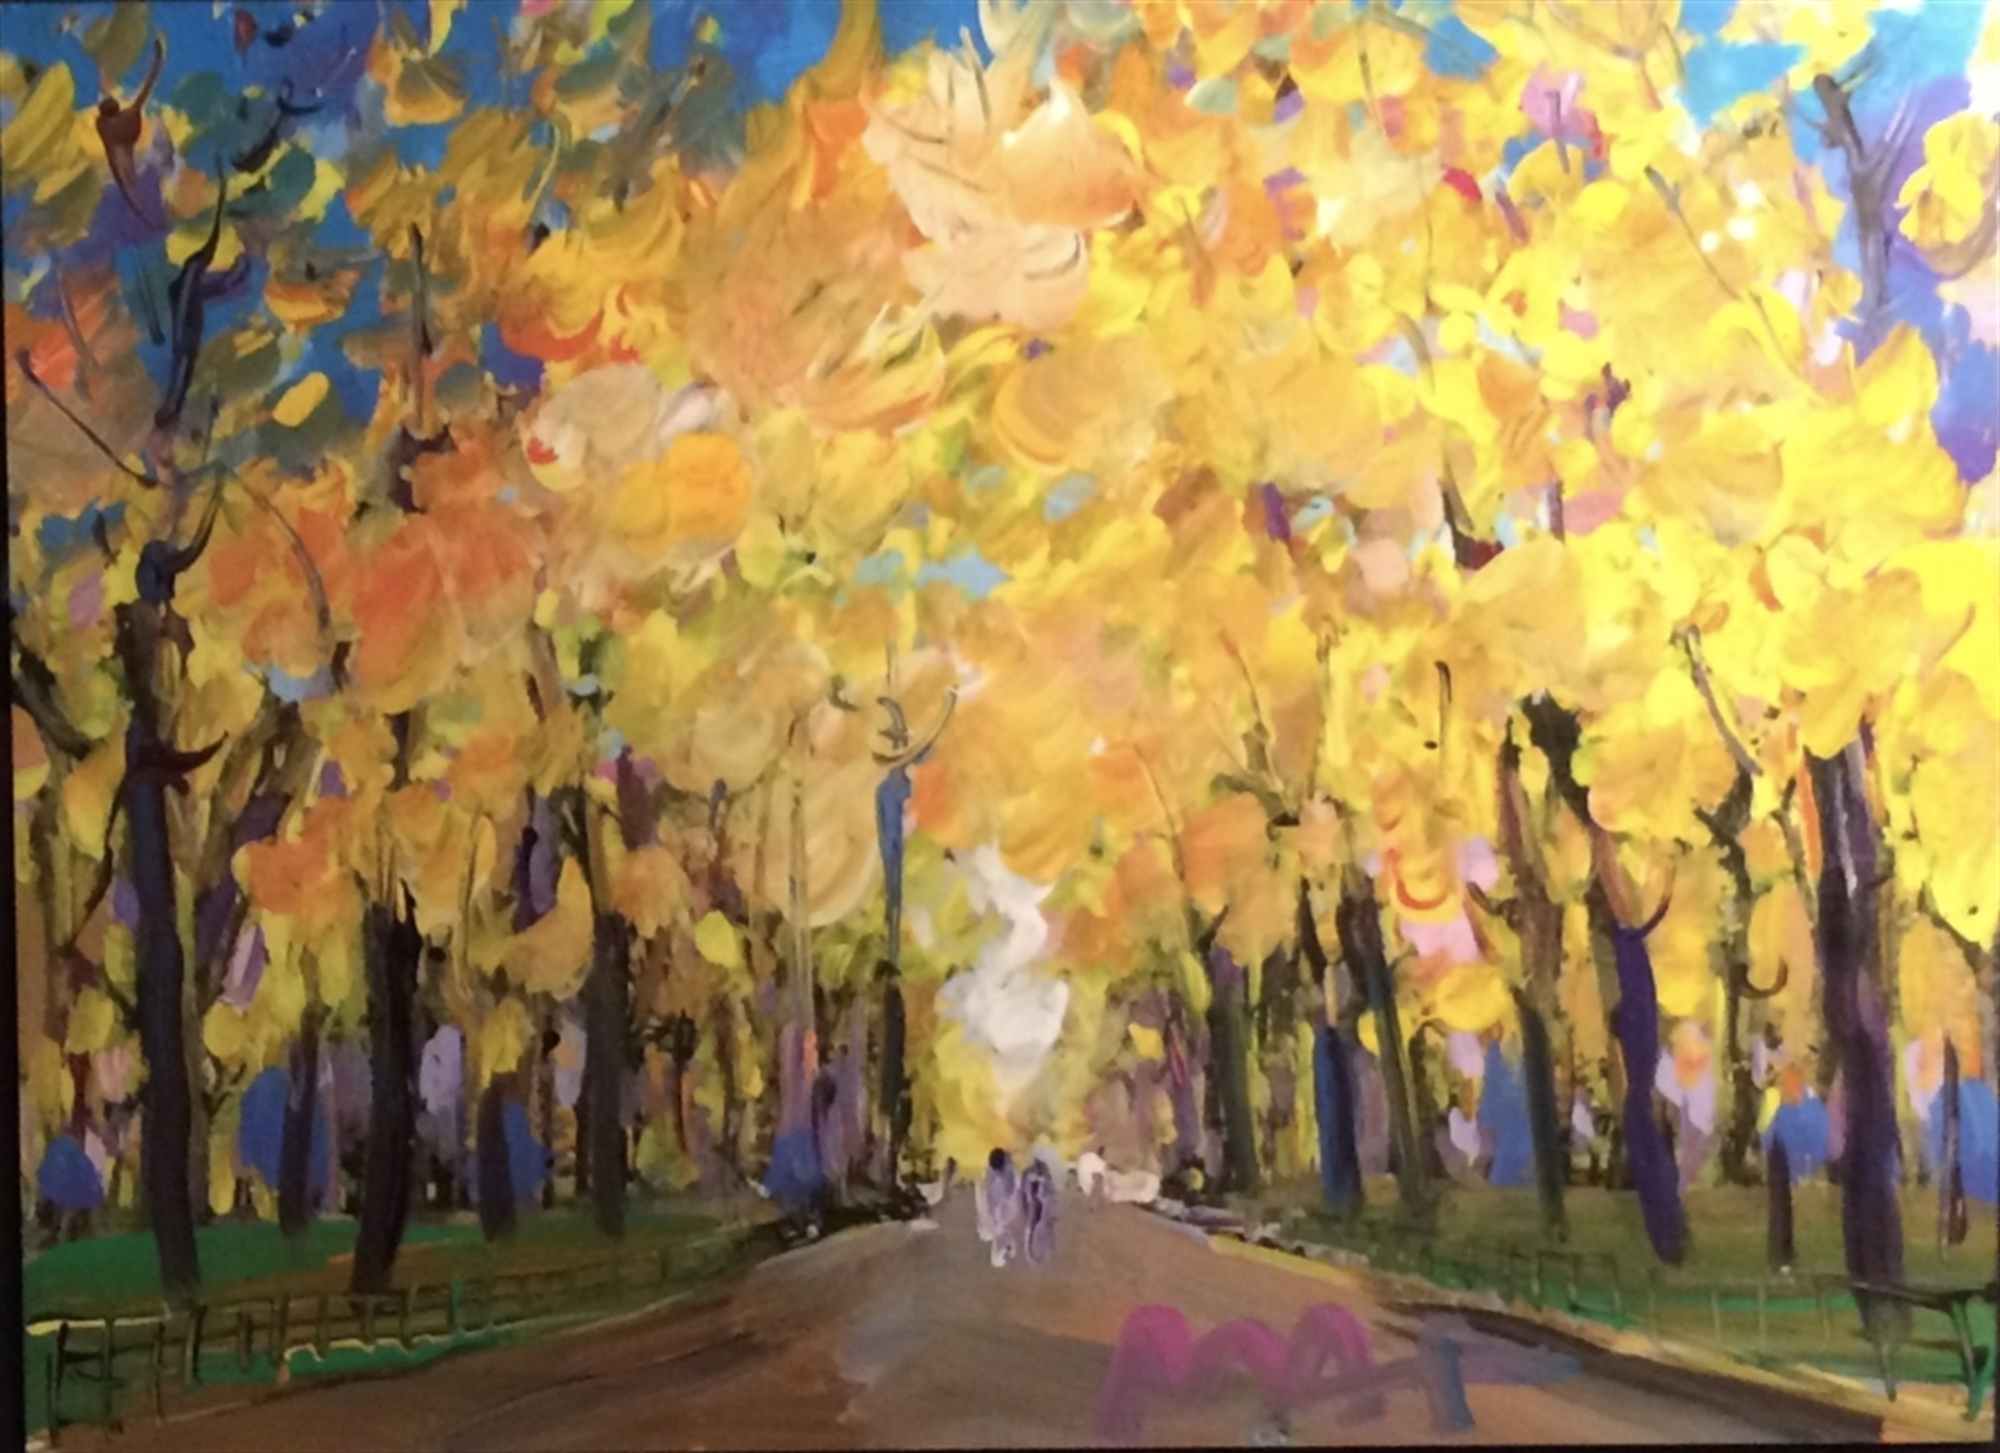 Four Seasons II: Autumn Central Park - Available as Commission by Peter Max